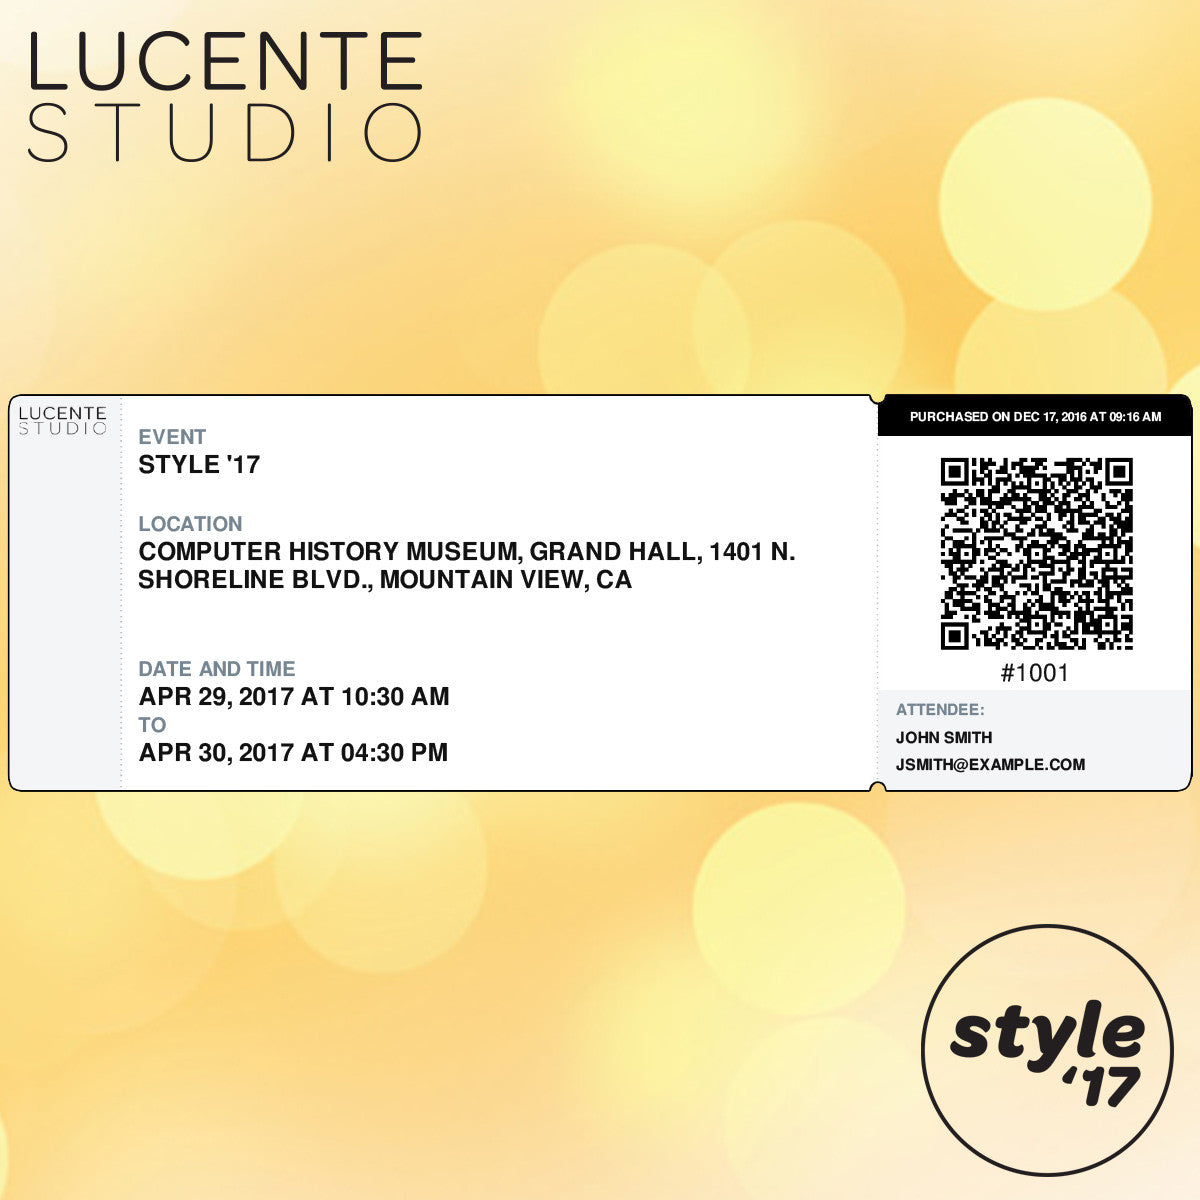 Lucente Studio Style '17 Event Ticket